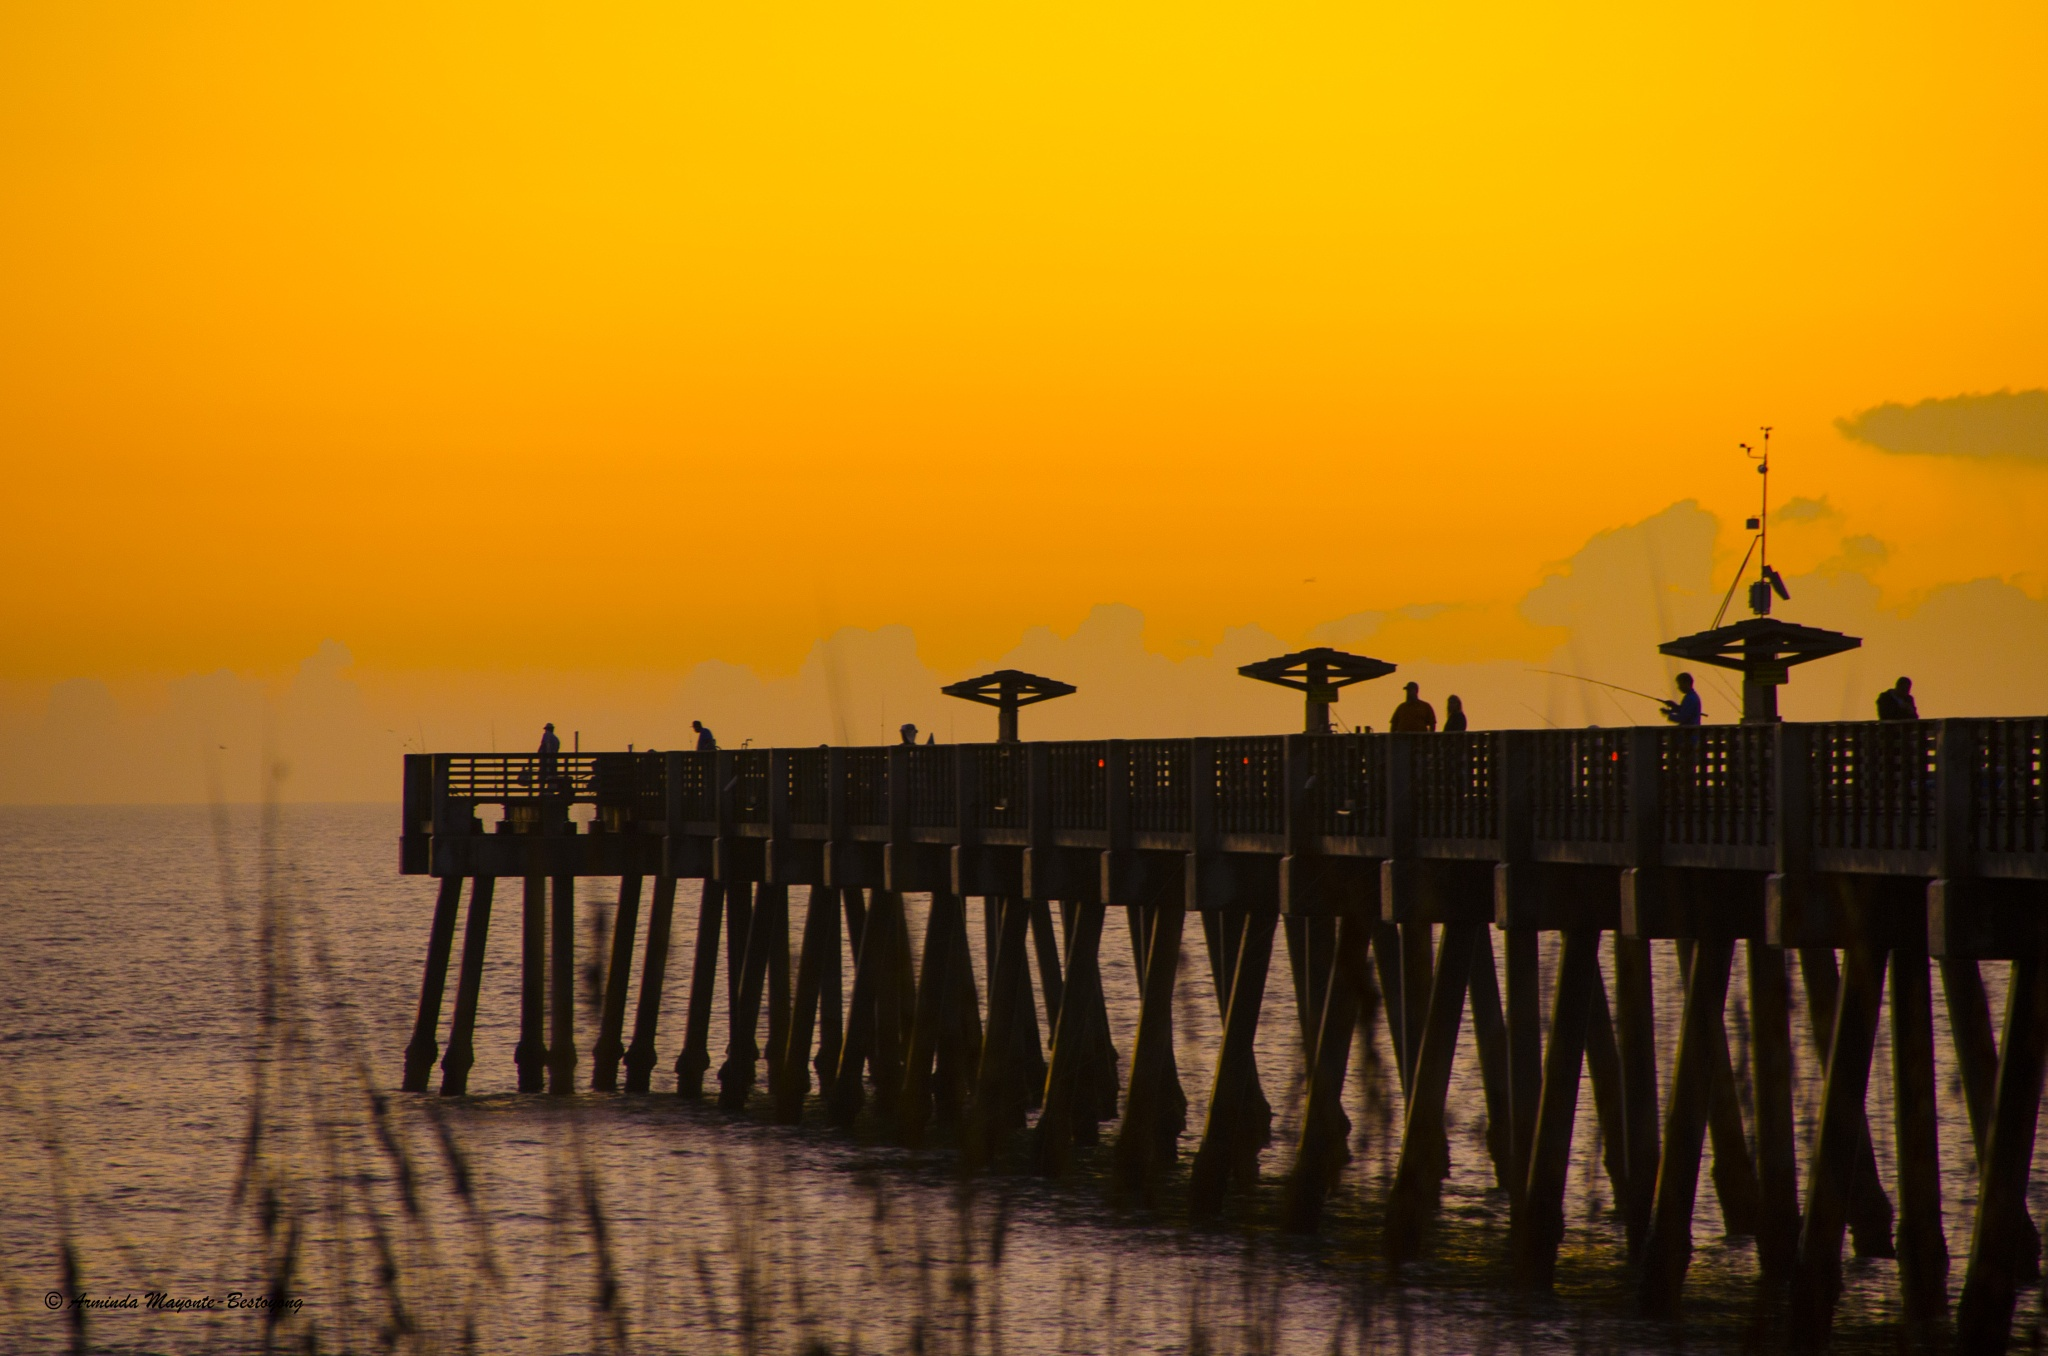 The Pier by Arminda